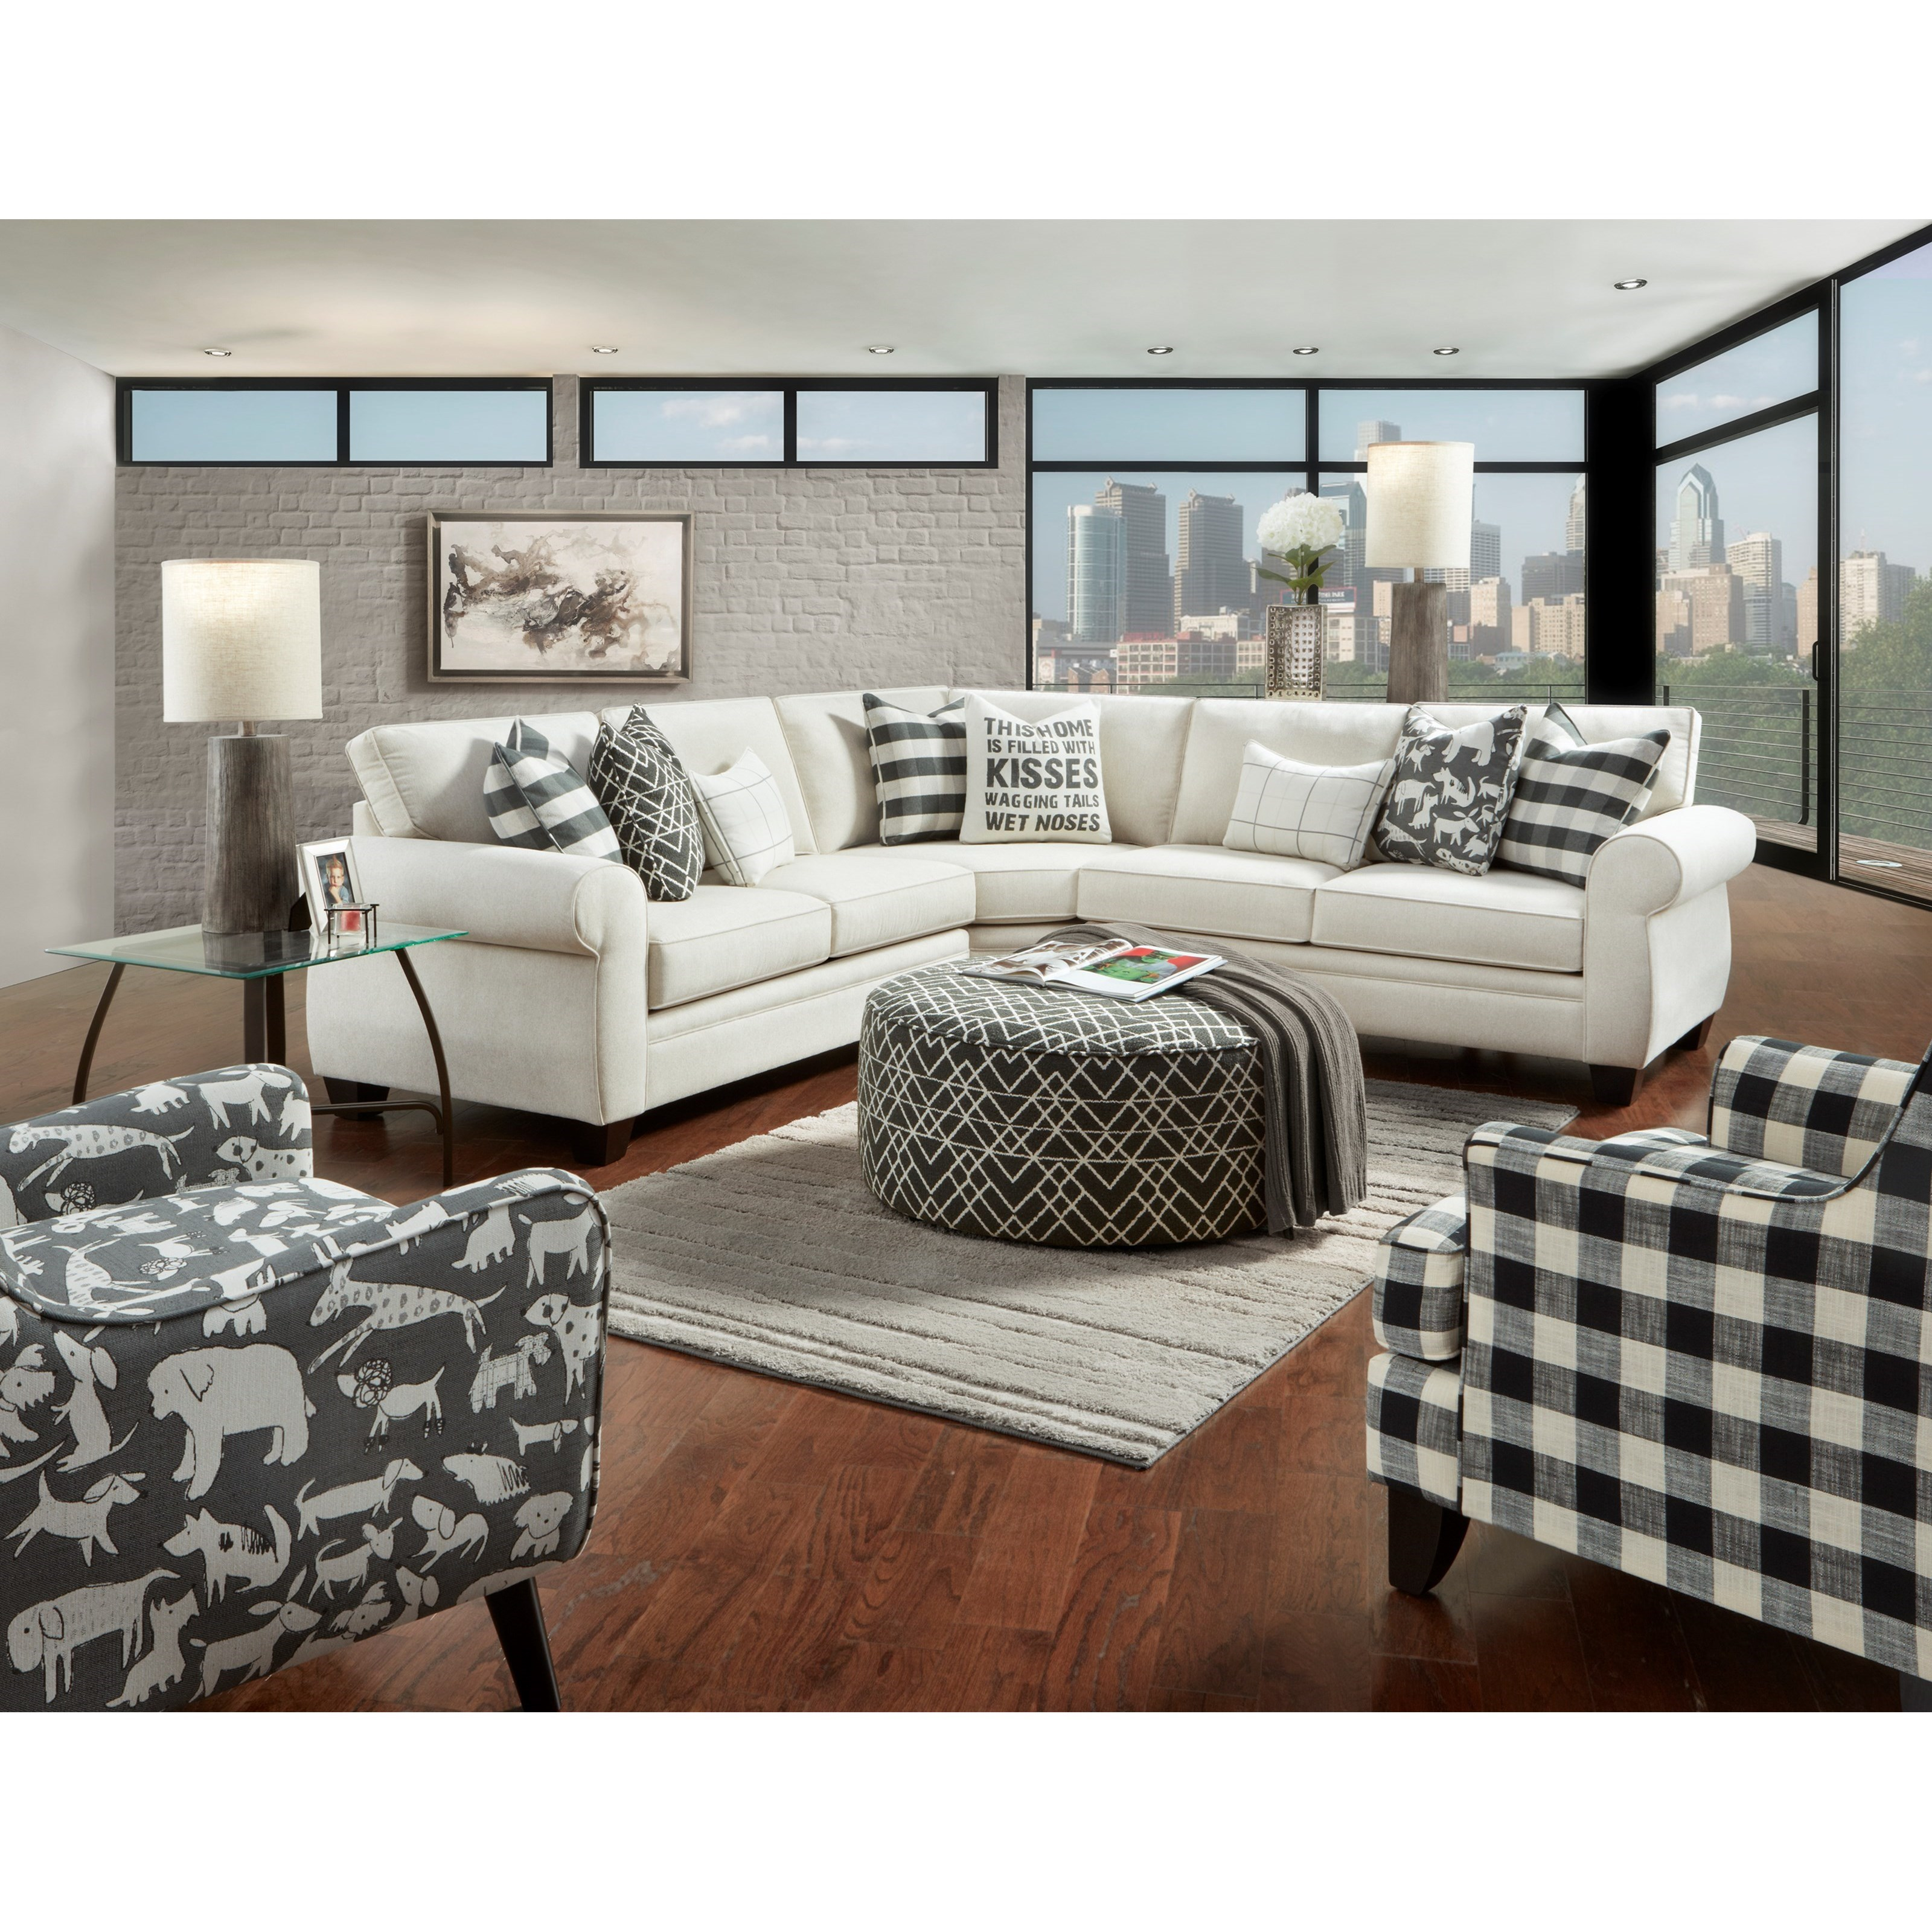 1170 POPSTITCH SHELL (LIVESMART) Stationary Living Room Group by Fusion Furniture at Wilson's Furniture